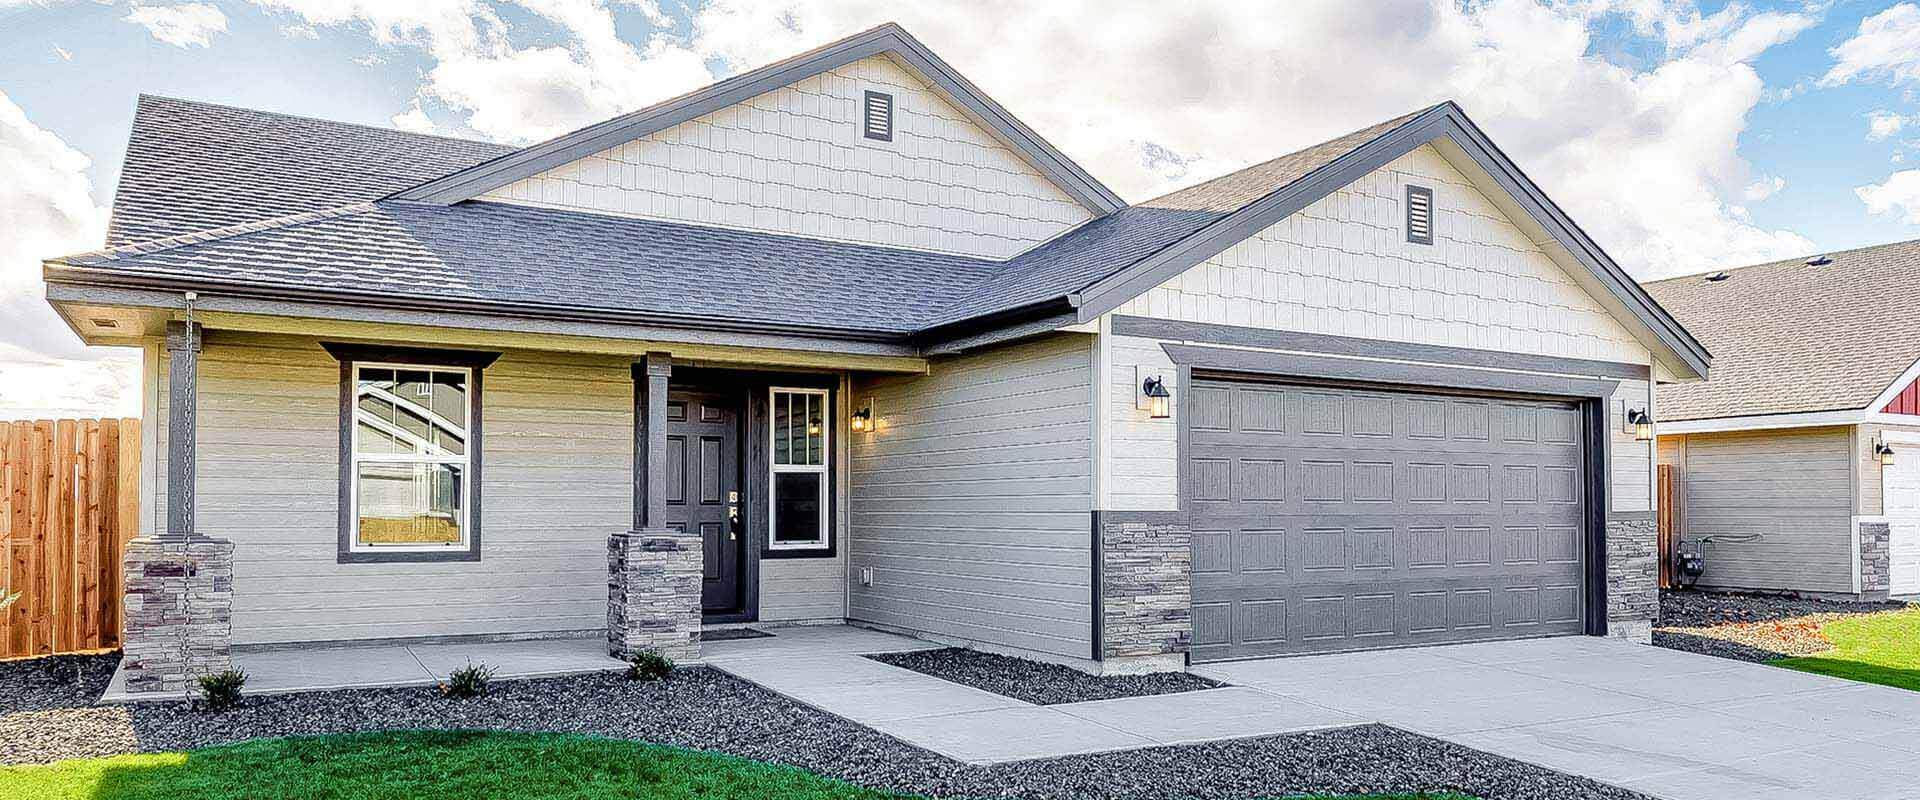 New_Homes_and_Communities_Boise_Idaho_Hubble_Homes_00351.jpg